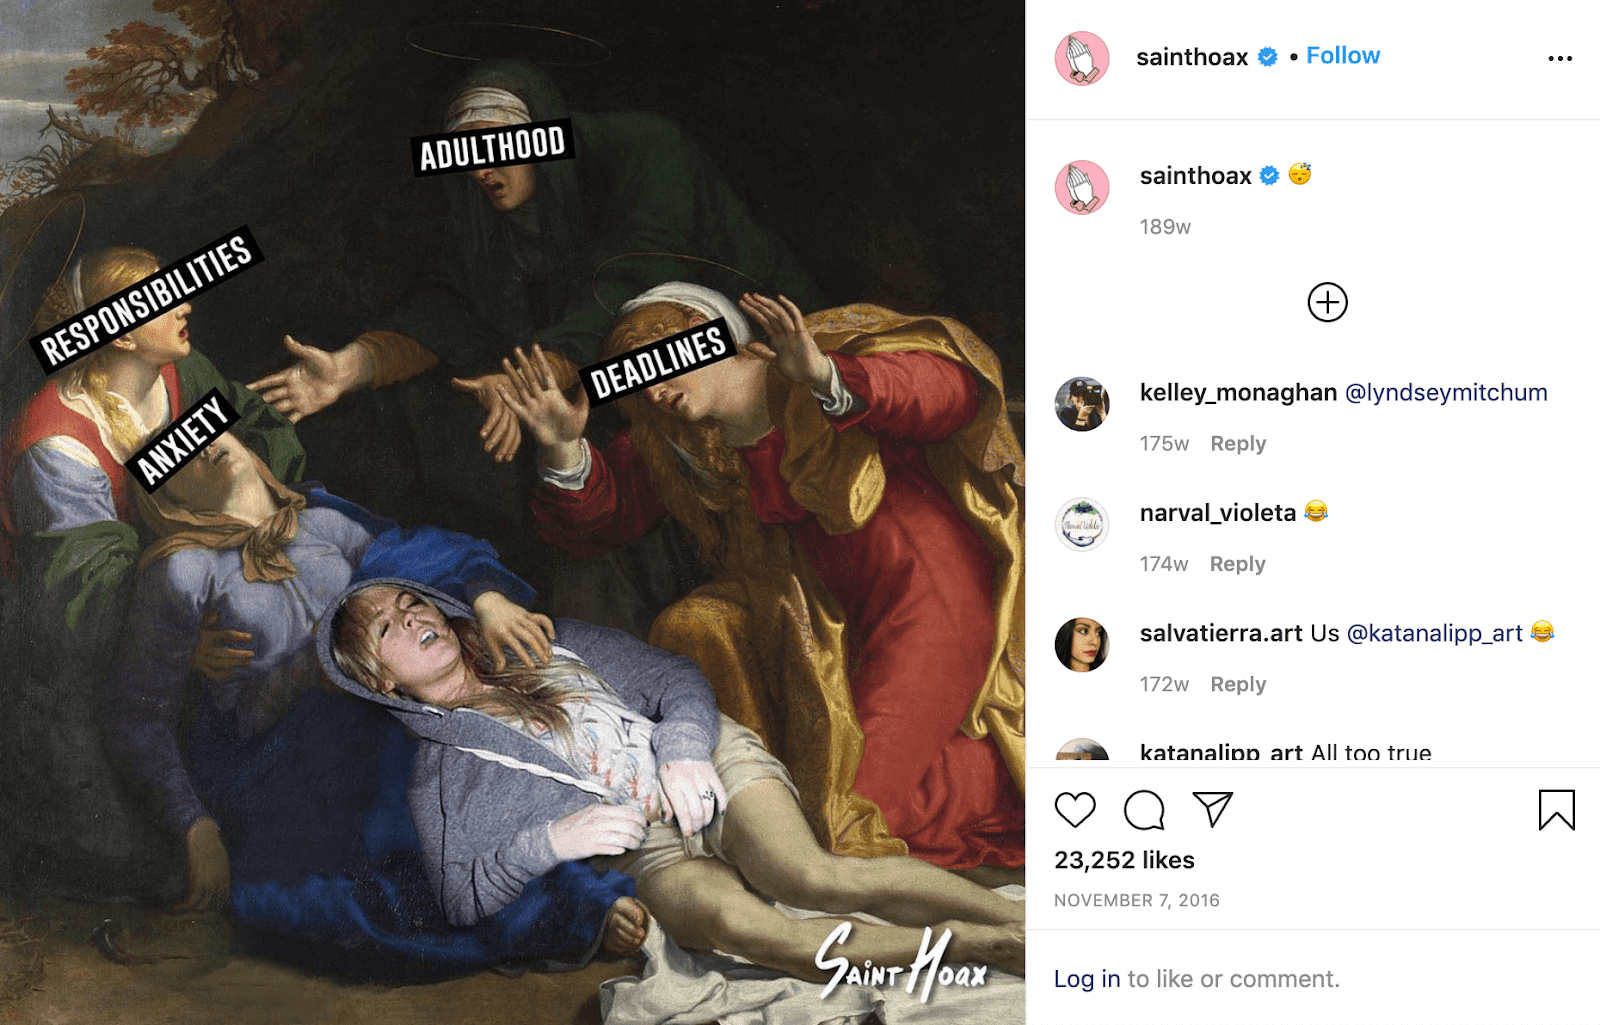 """Painting of four women huddled around an overlaid image of a sleeping Lindsay Lohan. The women around her have text over their faces saying, """"Responsibilities,"""" """"Anxiety,"""" """"Adulthood,"""" and """"Deadlines."""""""